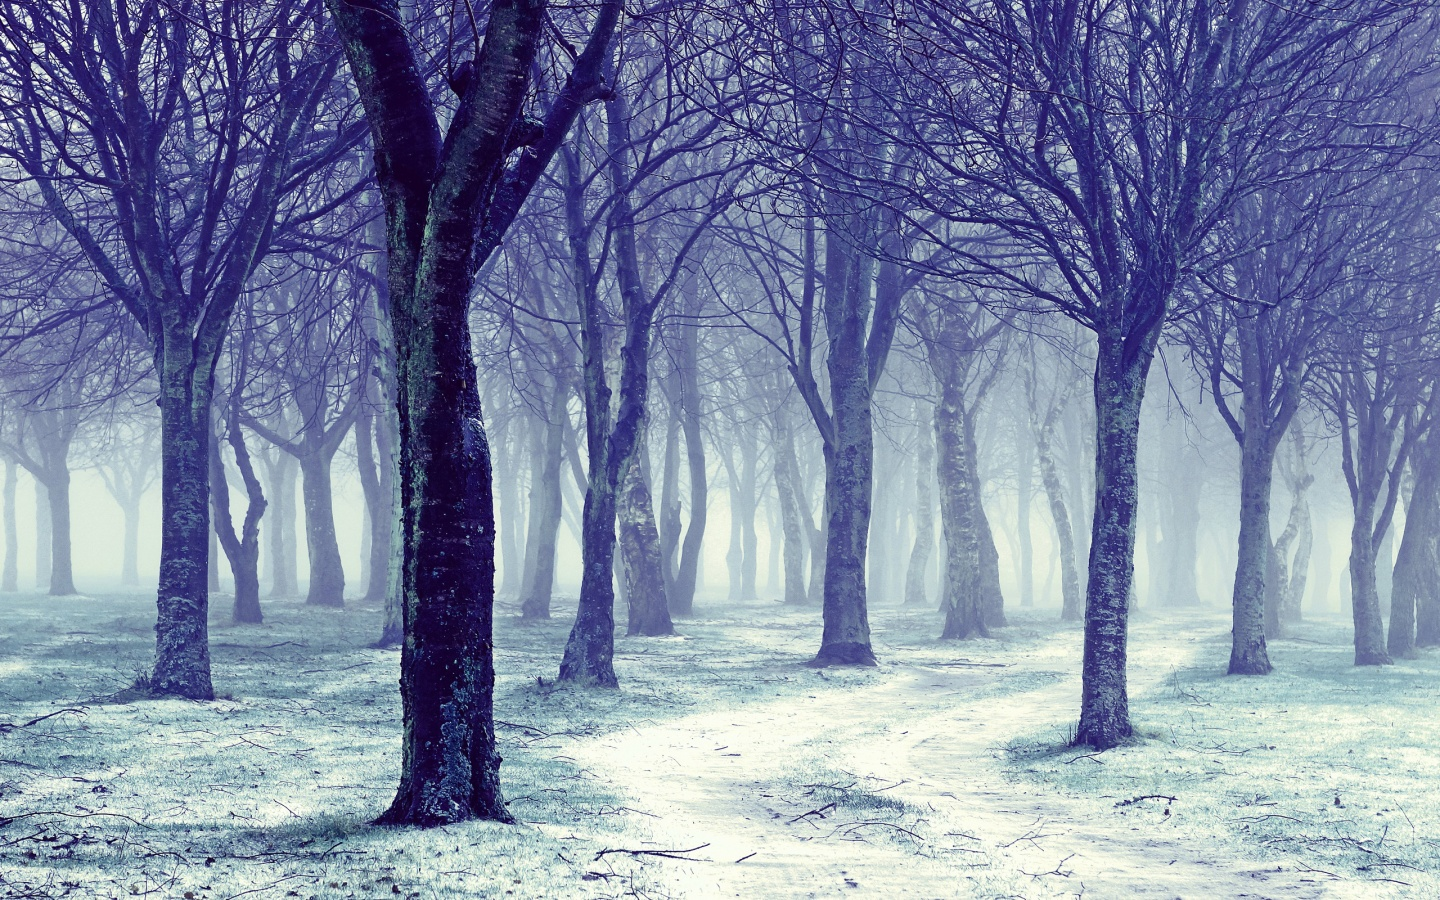 Nature Snowy Winter Forest Trees 1440 x 900 Download Close 1440x900